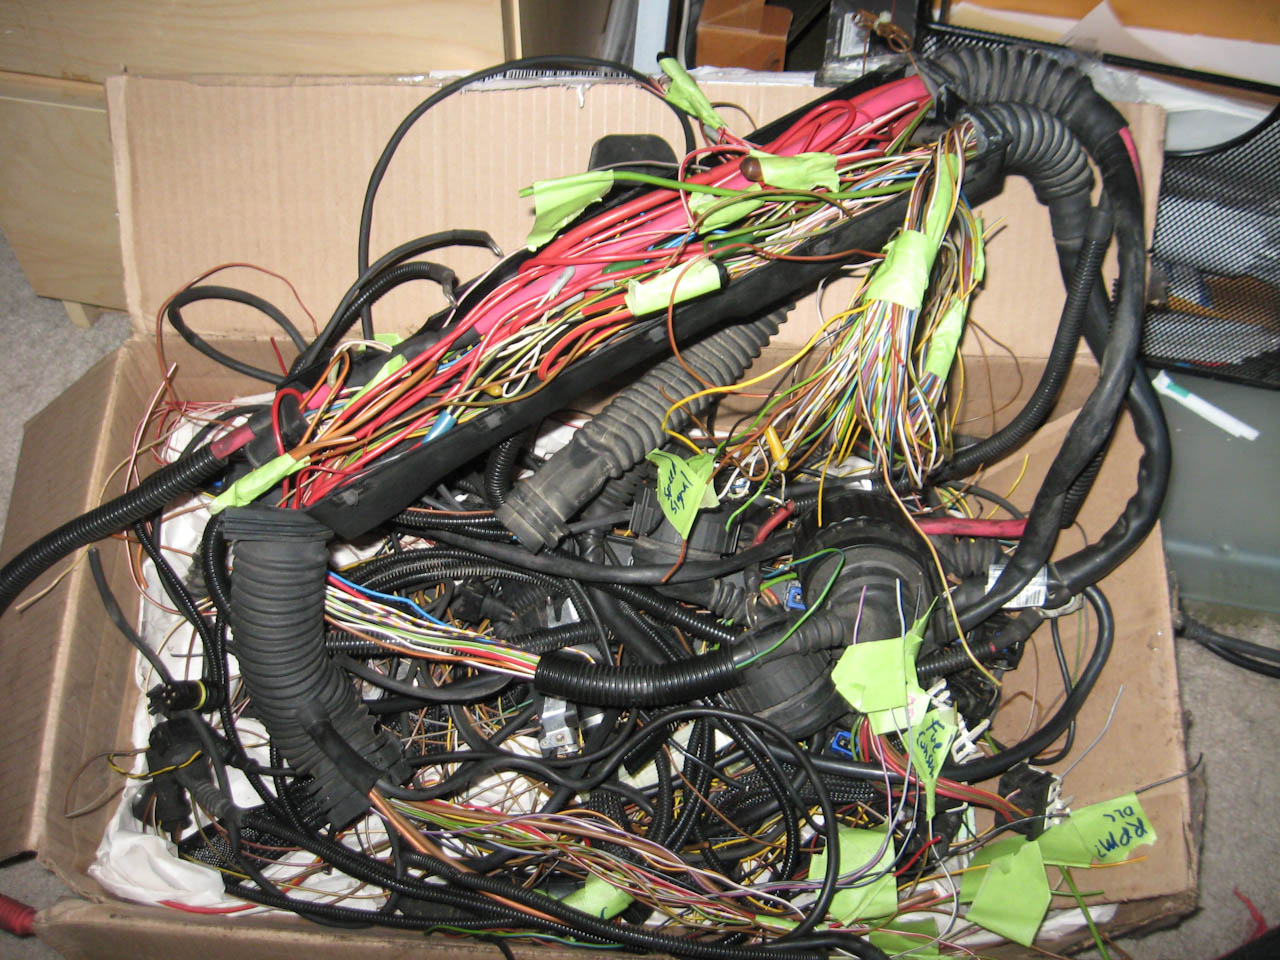 hight resolution of this is what i have to go to the pcm area i left the various emissions related stuff in there as well so i don t have to find the wires later